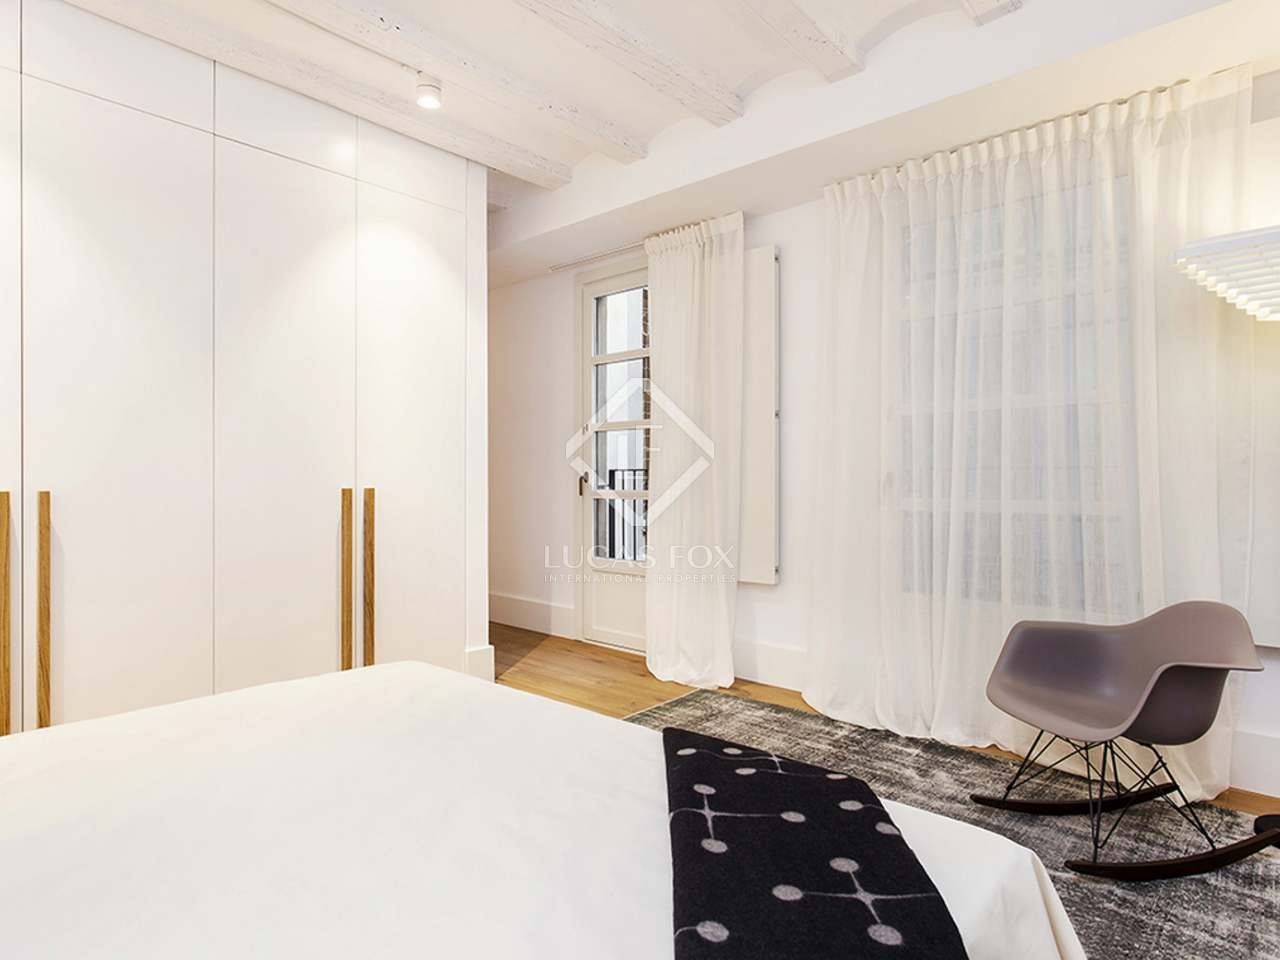 Fabulous new 2-bedroom apartment to buy on Calle Marlet